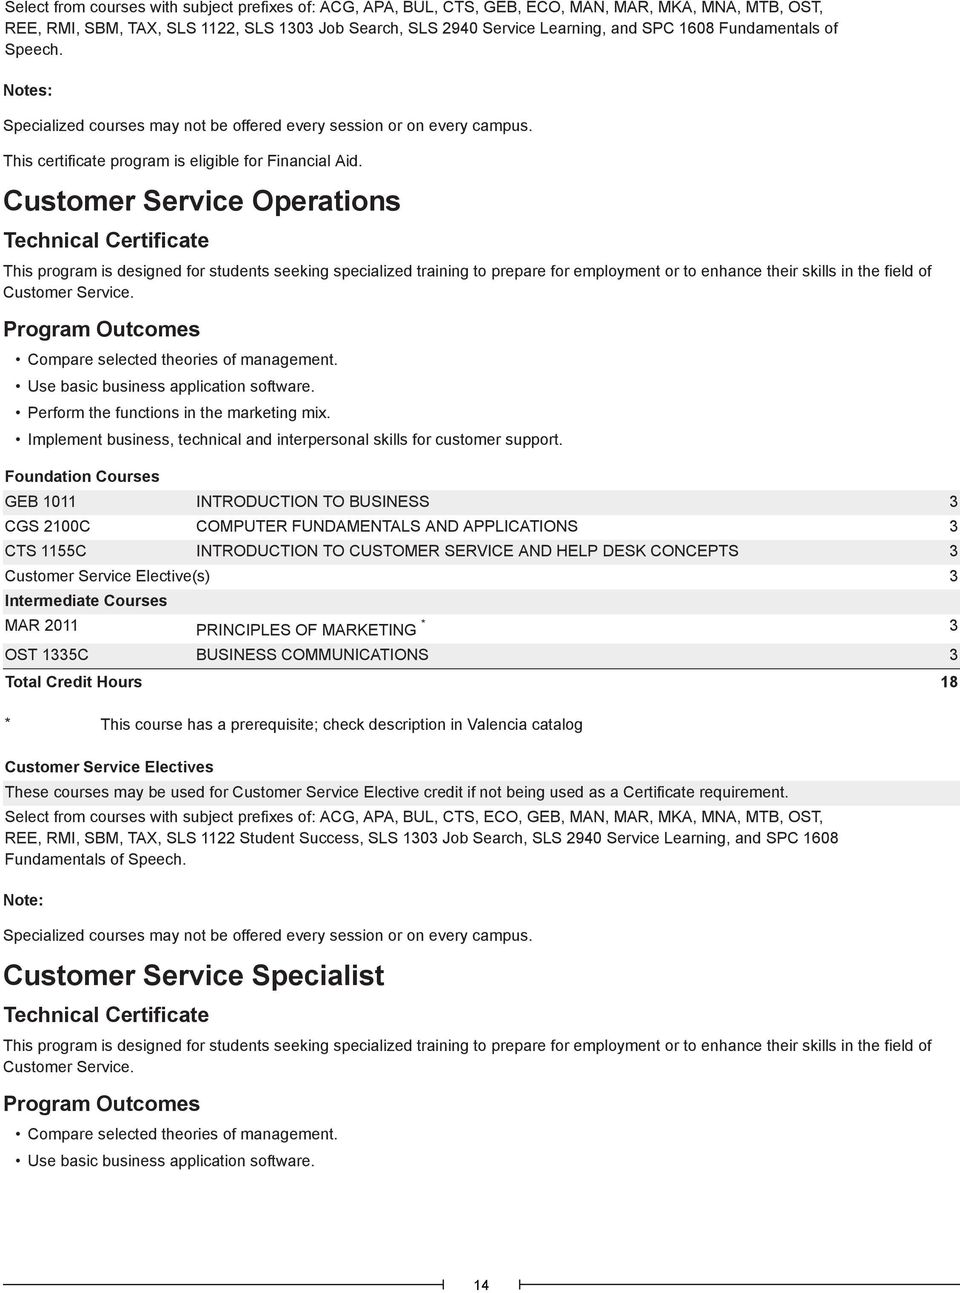 Customer Service Operations This program is designed for students seeking specialized training to prepare for employment or to enhance their skills in the field of Customer Service.